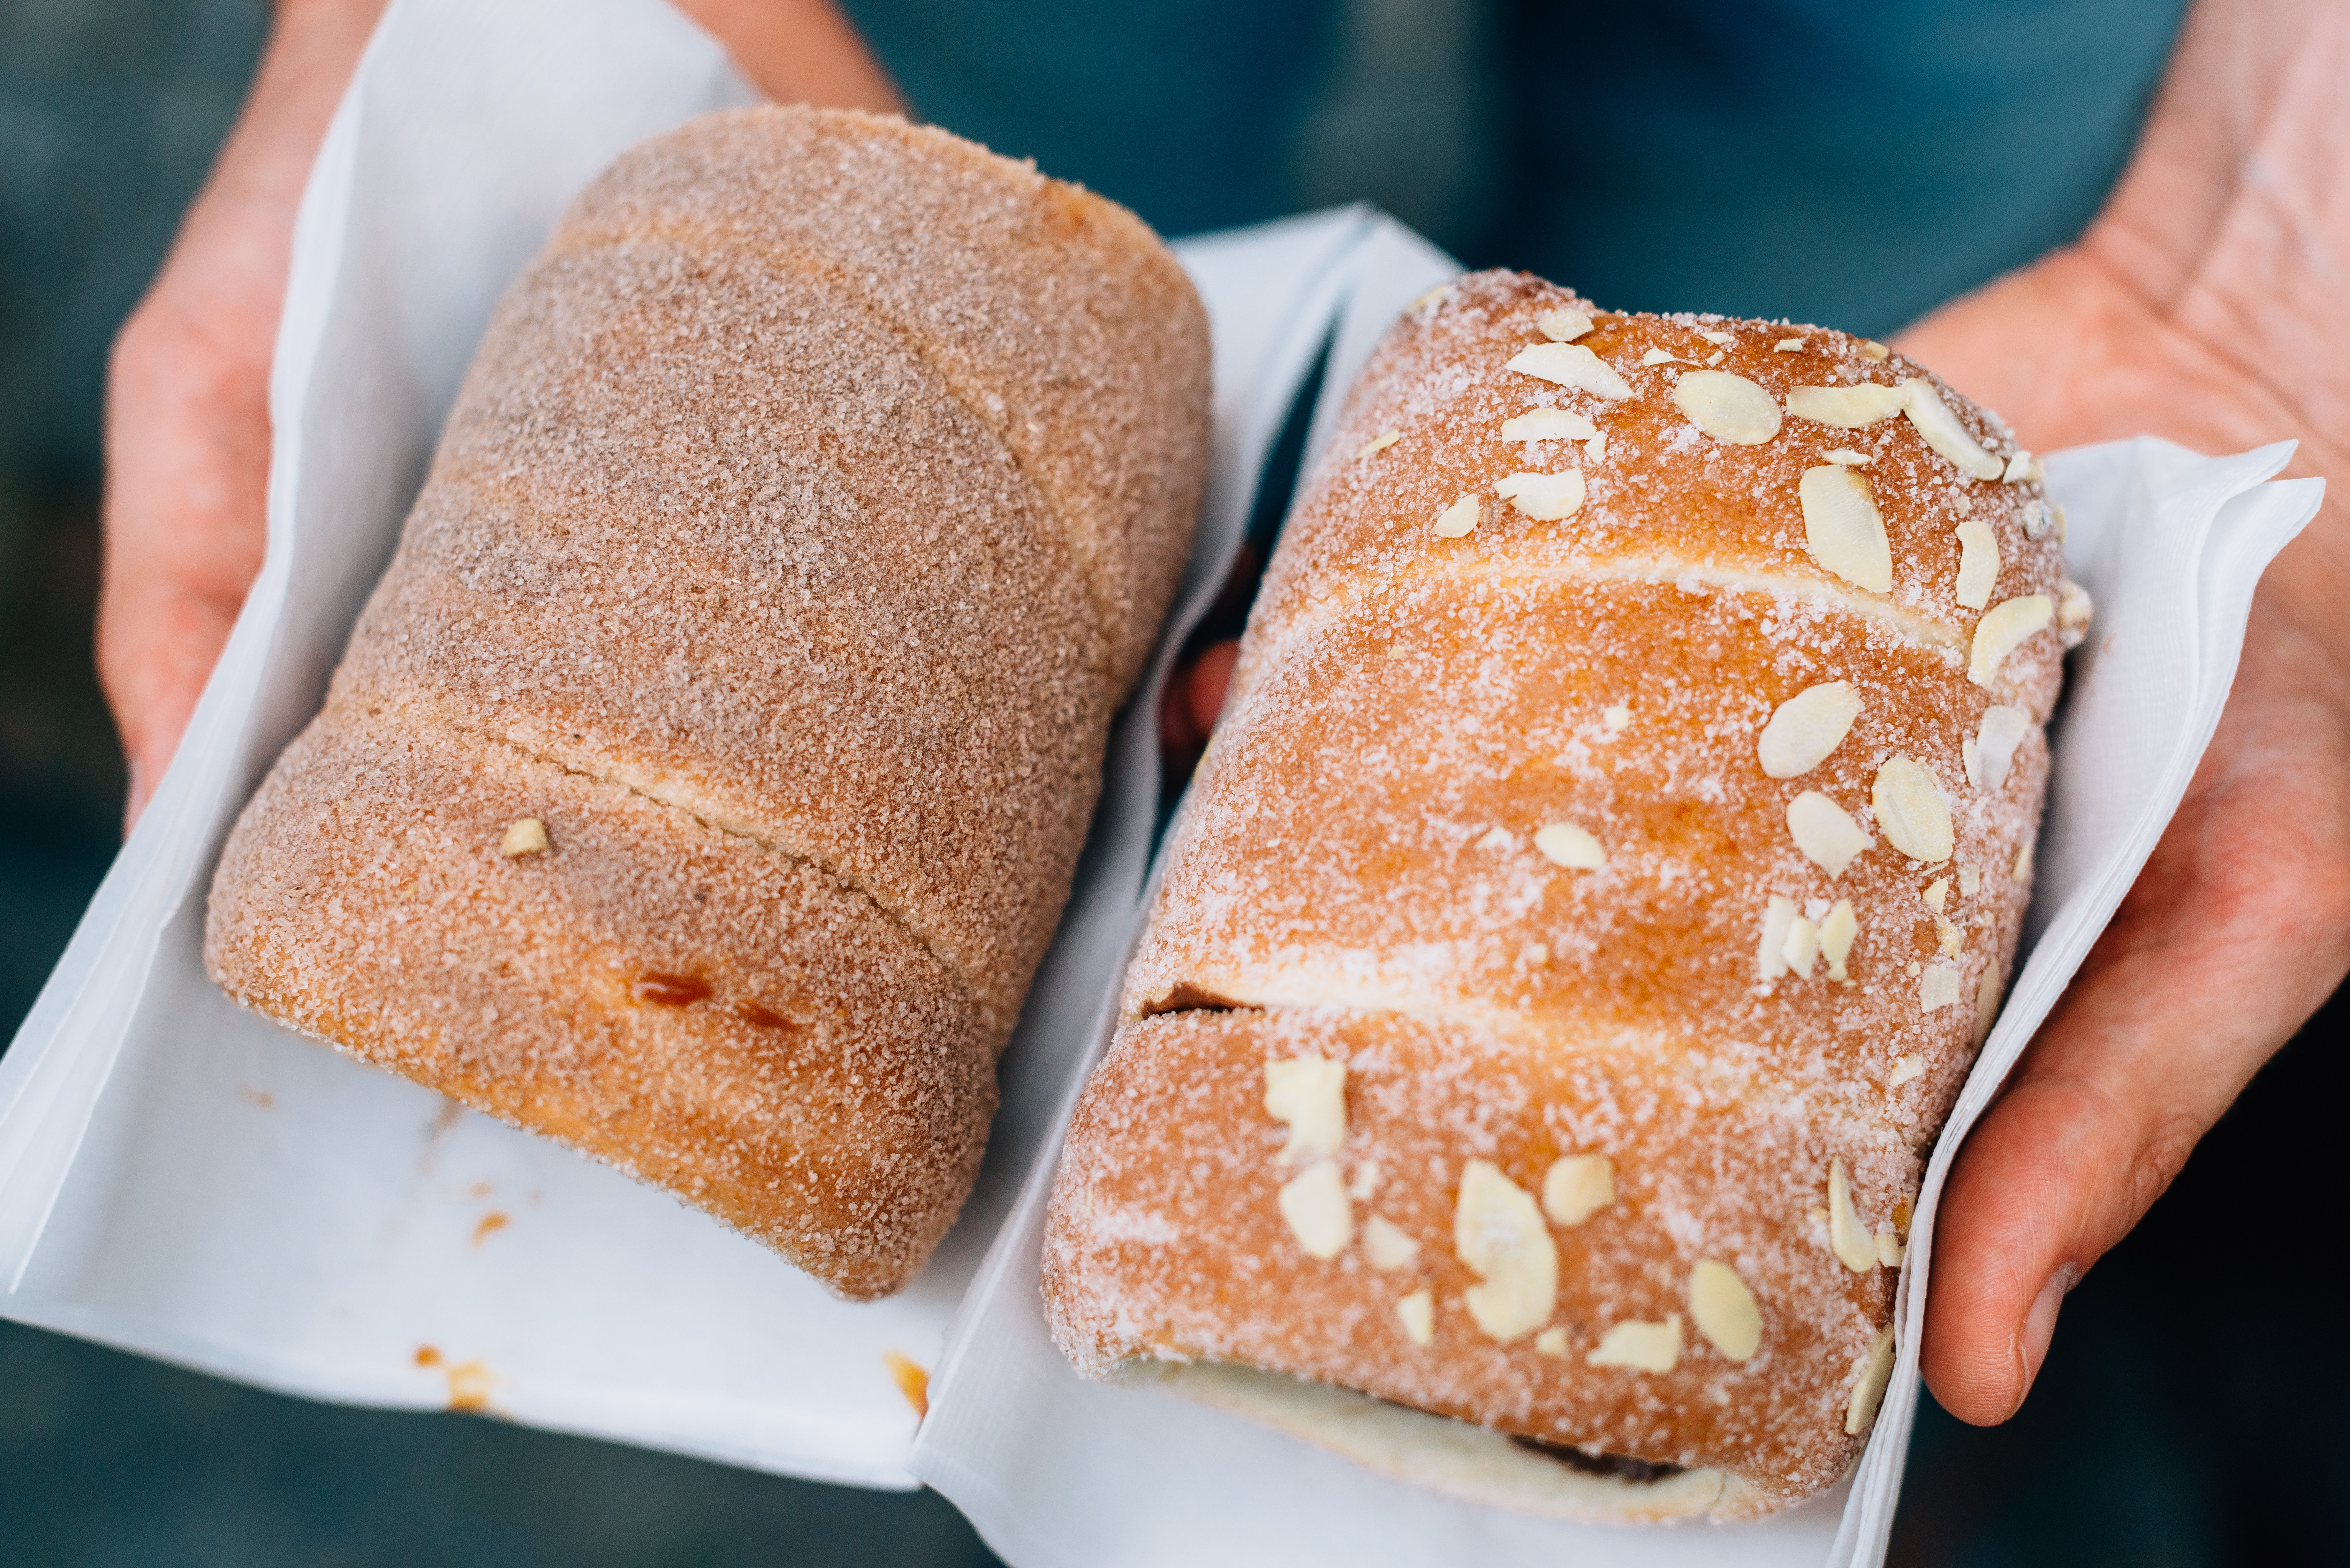 Hands hold two loaves of freshly baked sweet bread